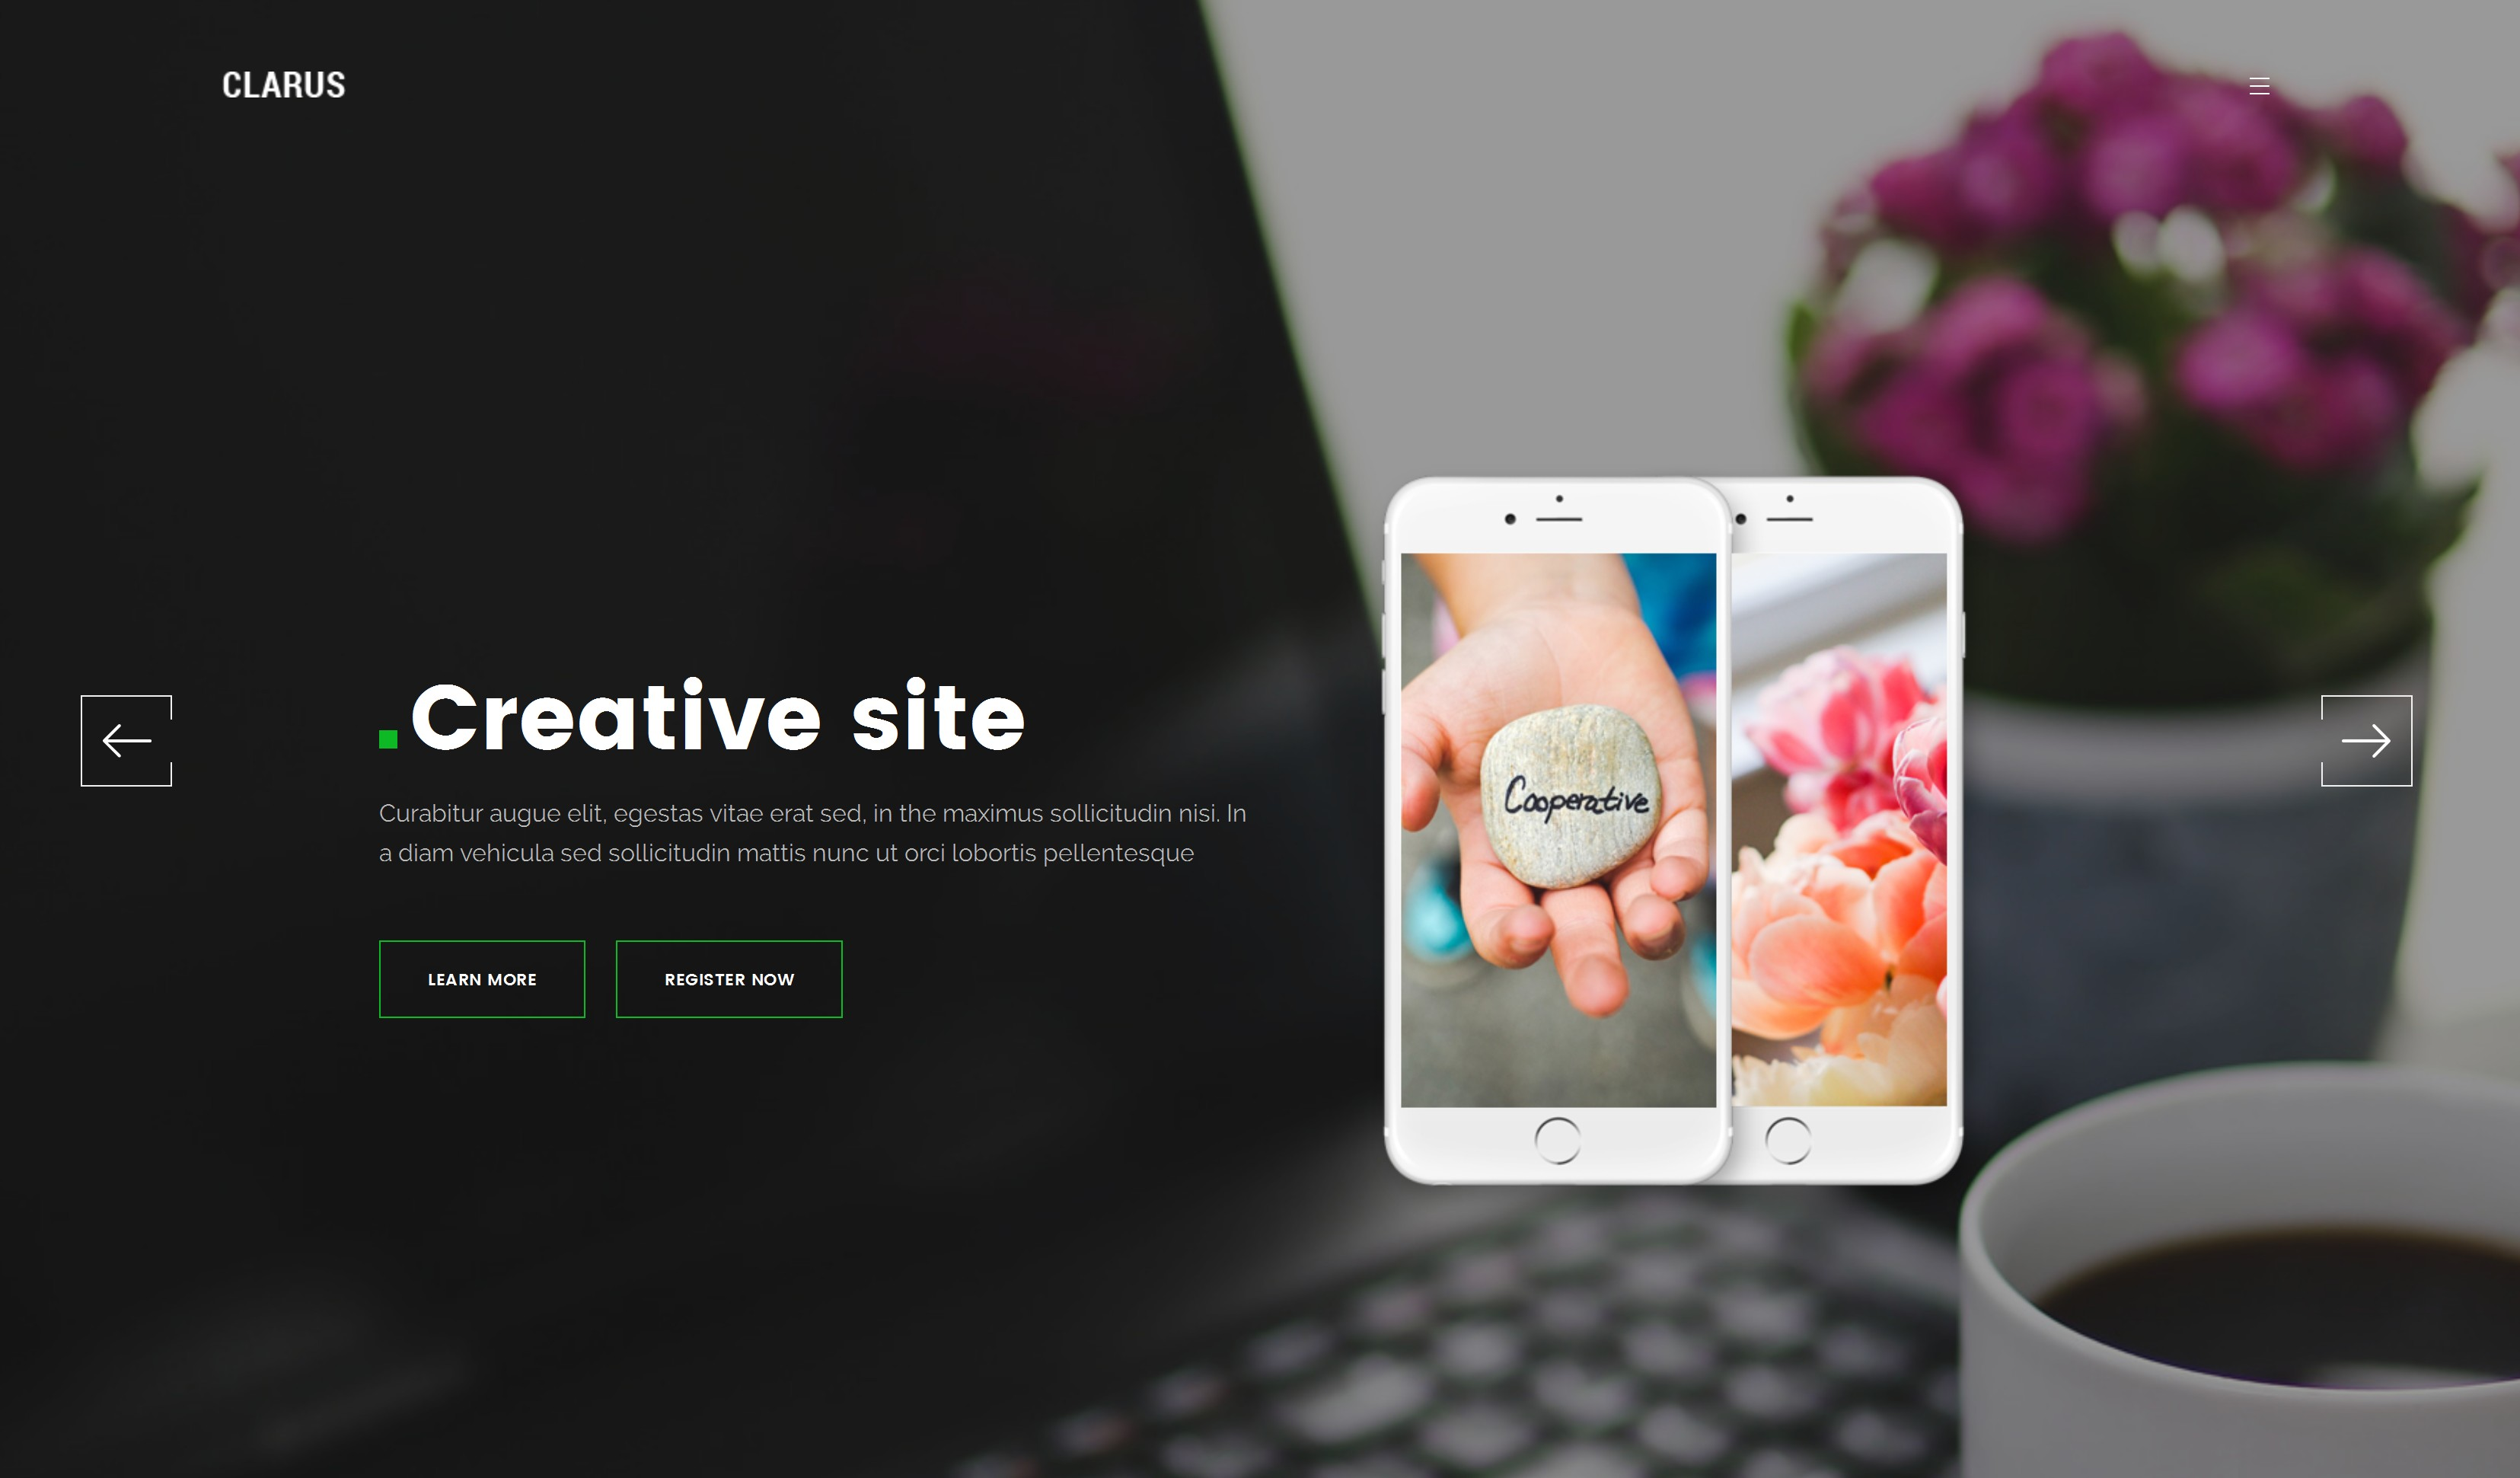 Free Download Bootstrap Carousel Theme